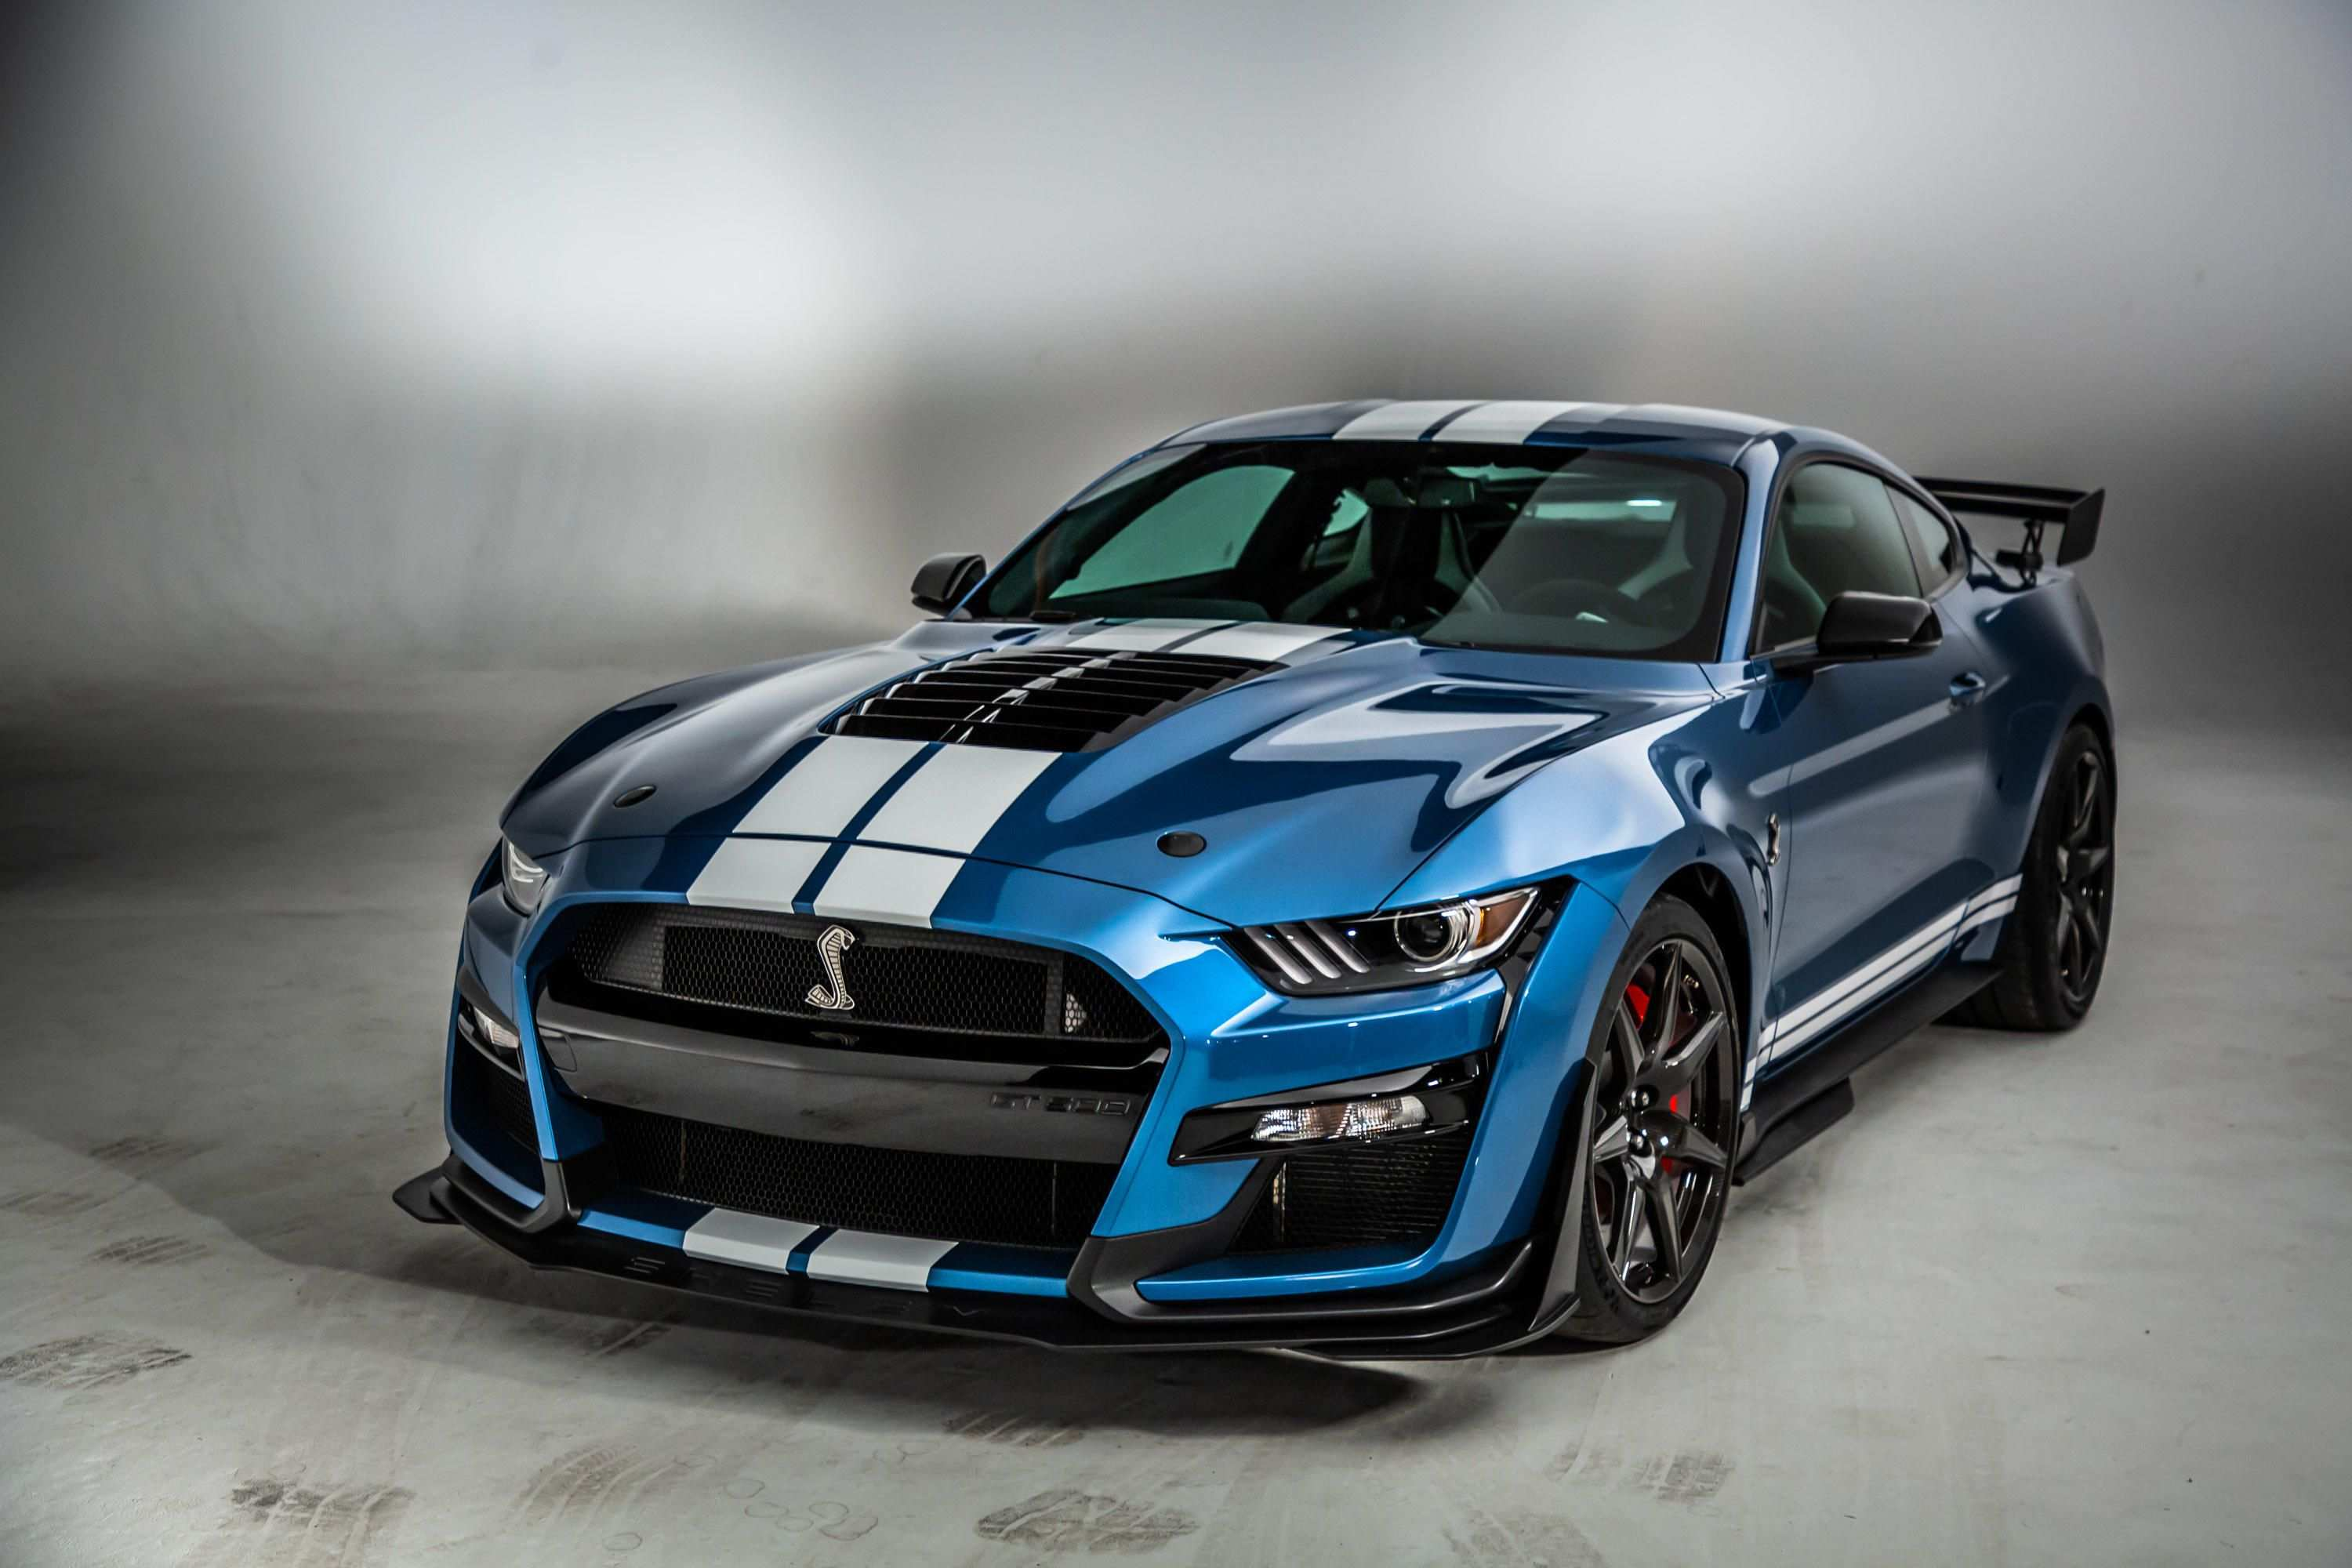 17 Best Review Price Of 2020 Ford Mustang Shelby Gt500 Pictures for Price Of 2020 Ford Mustang Shelby Gt500